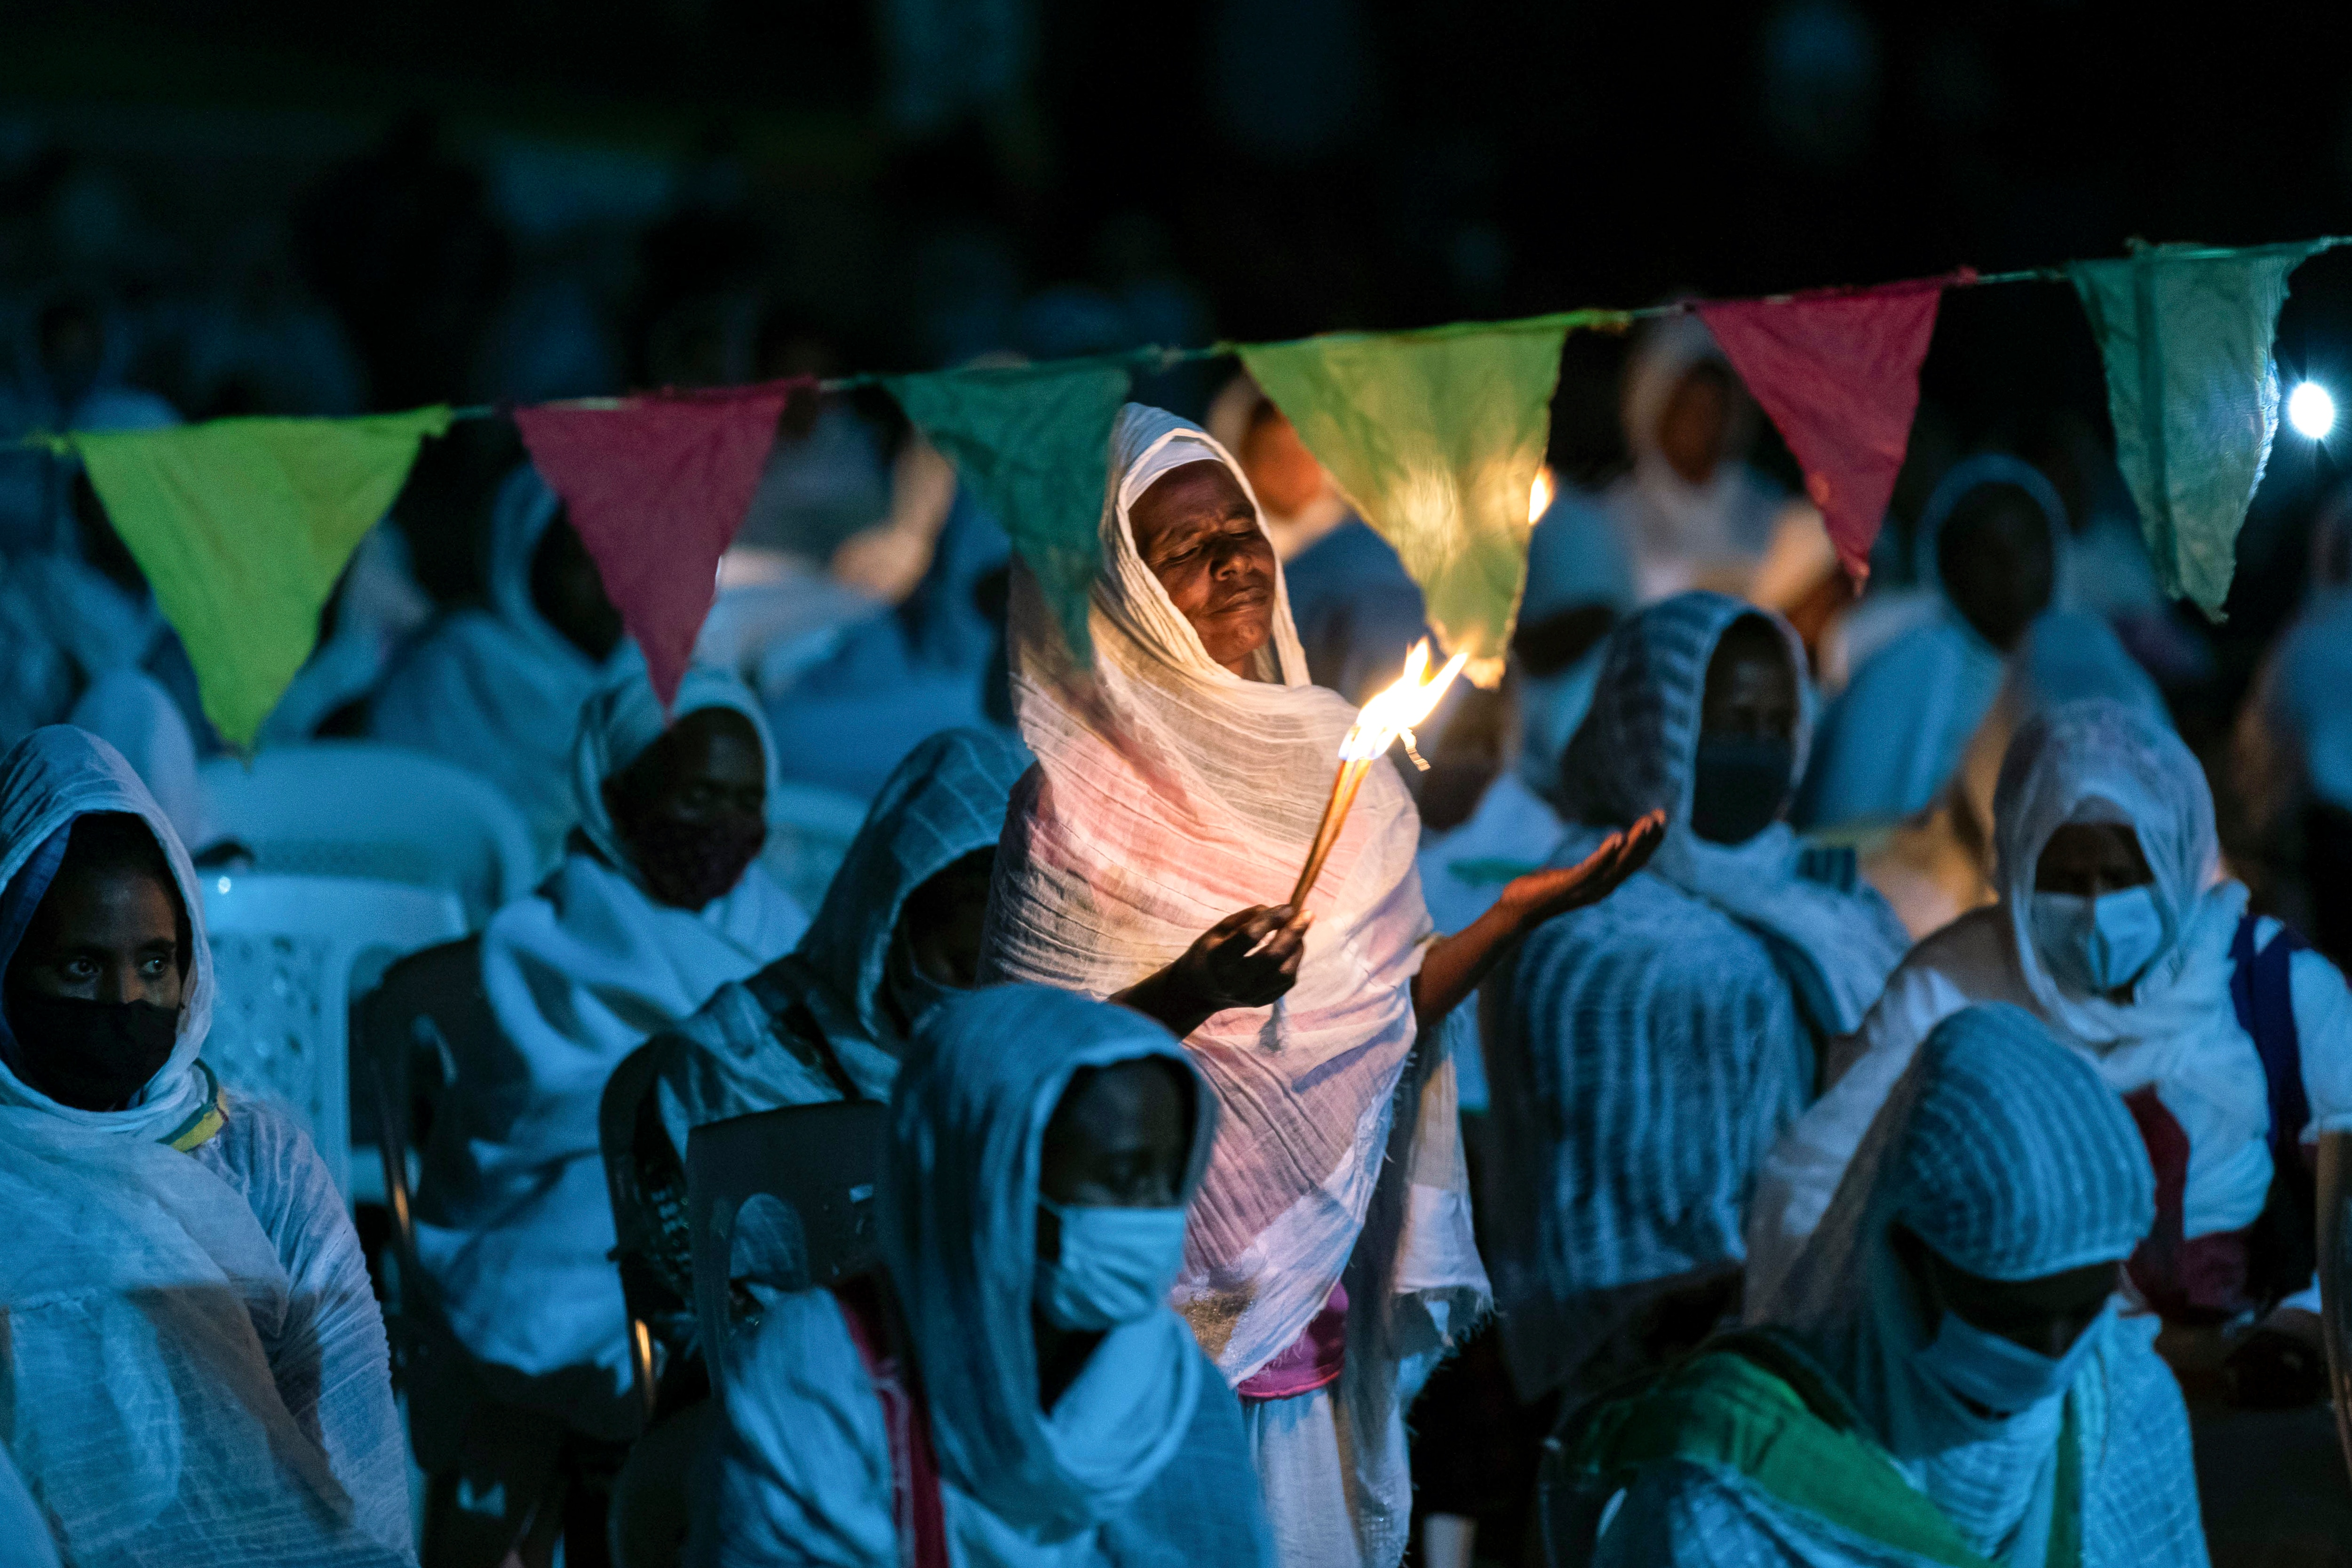 Ethiopian Orthodox Christians light candles and pray for peace during a church service in the Ethiopian capital Addis Ababa.